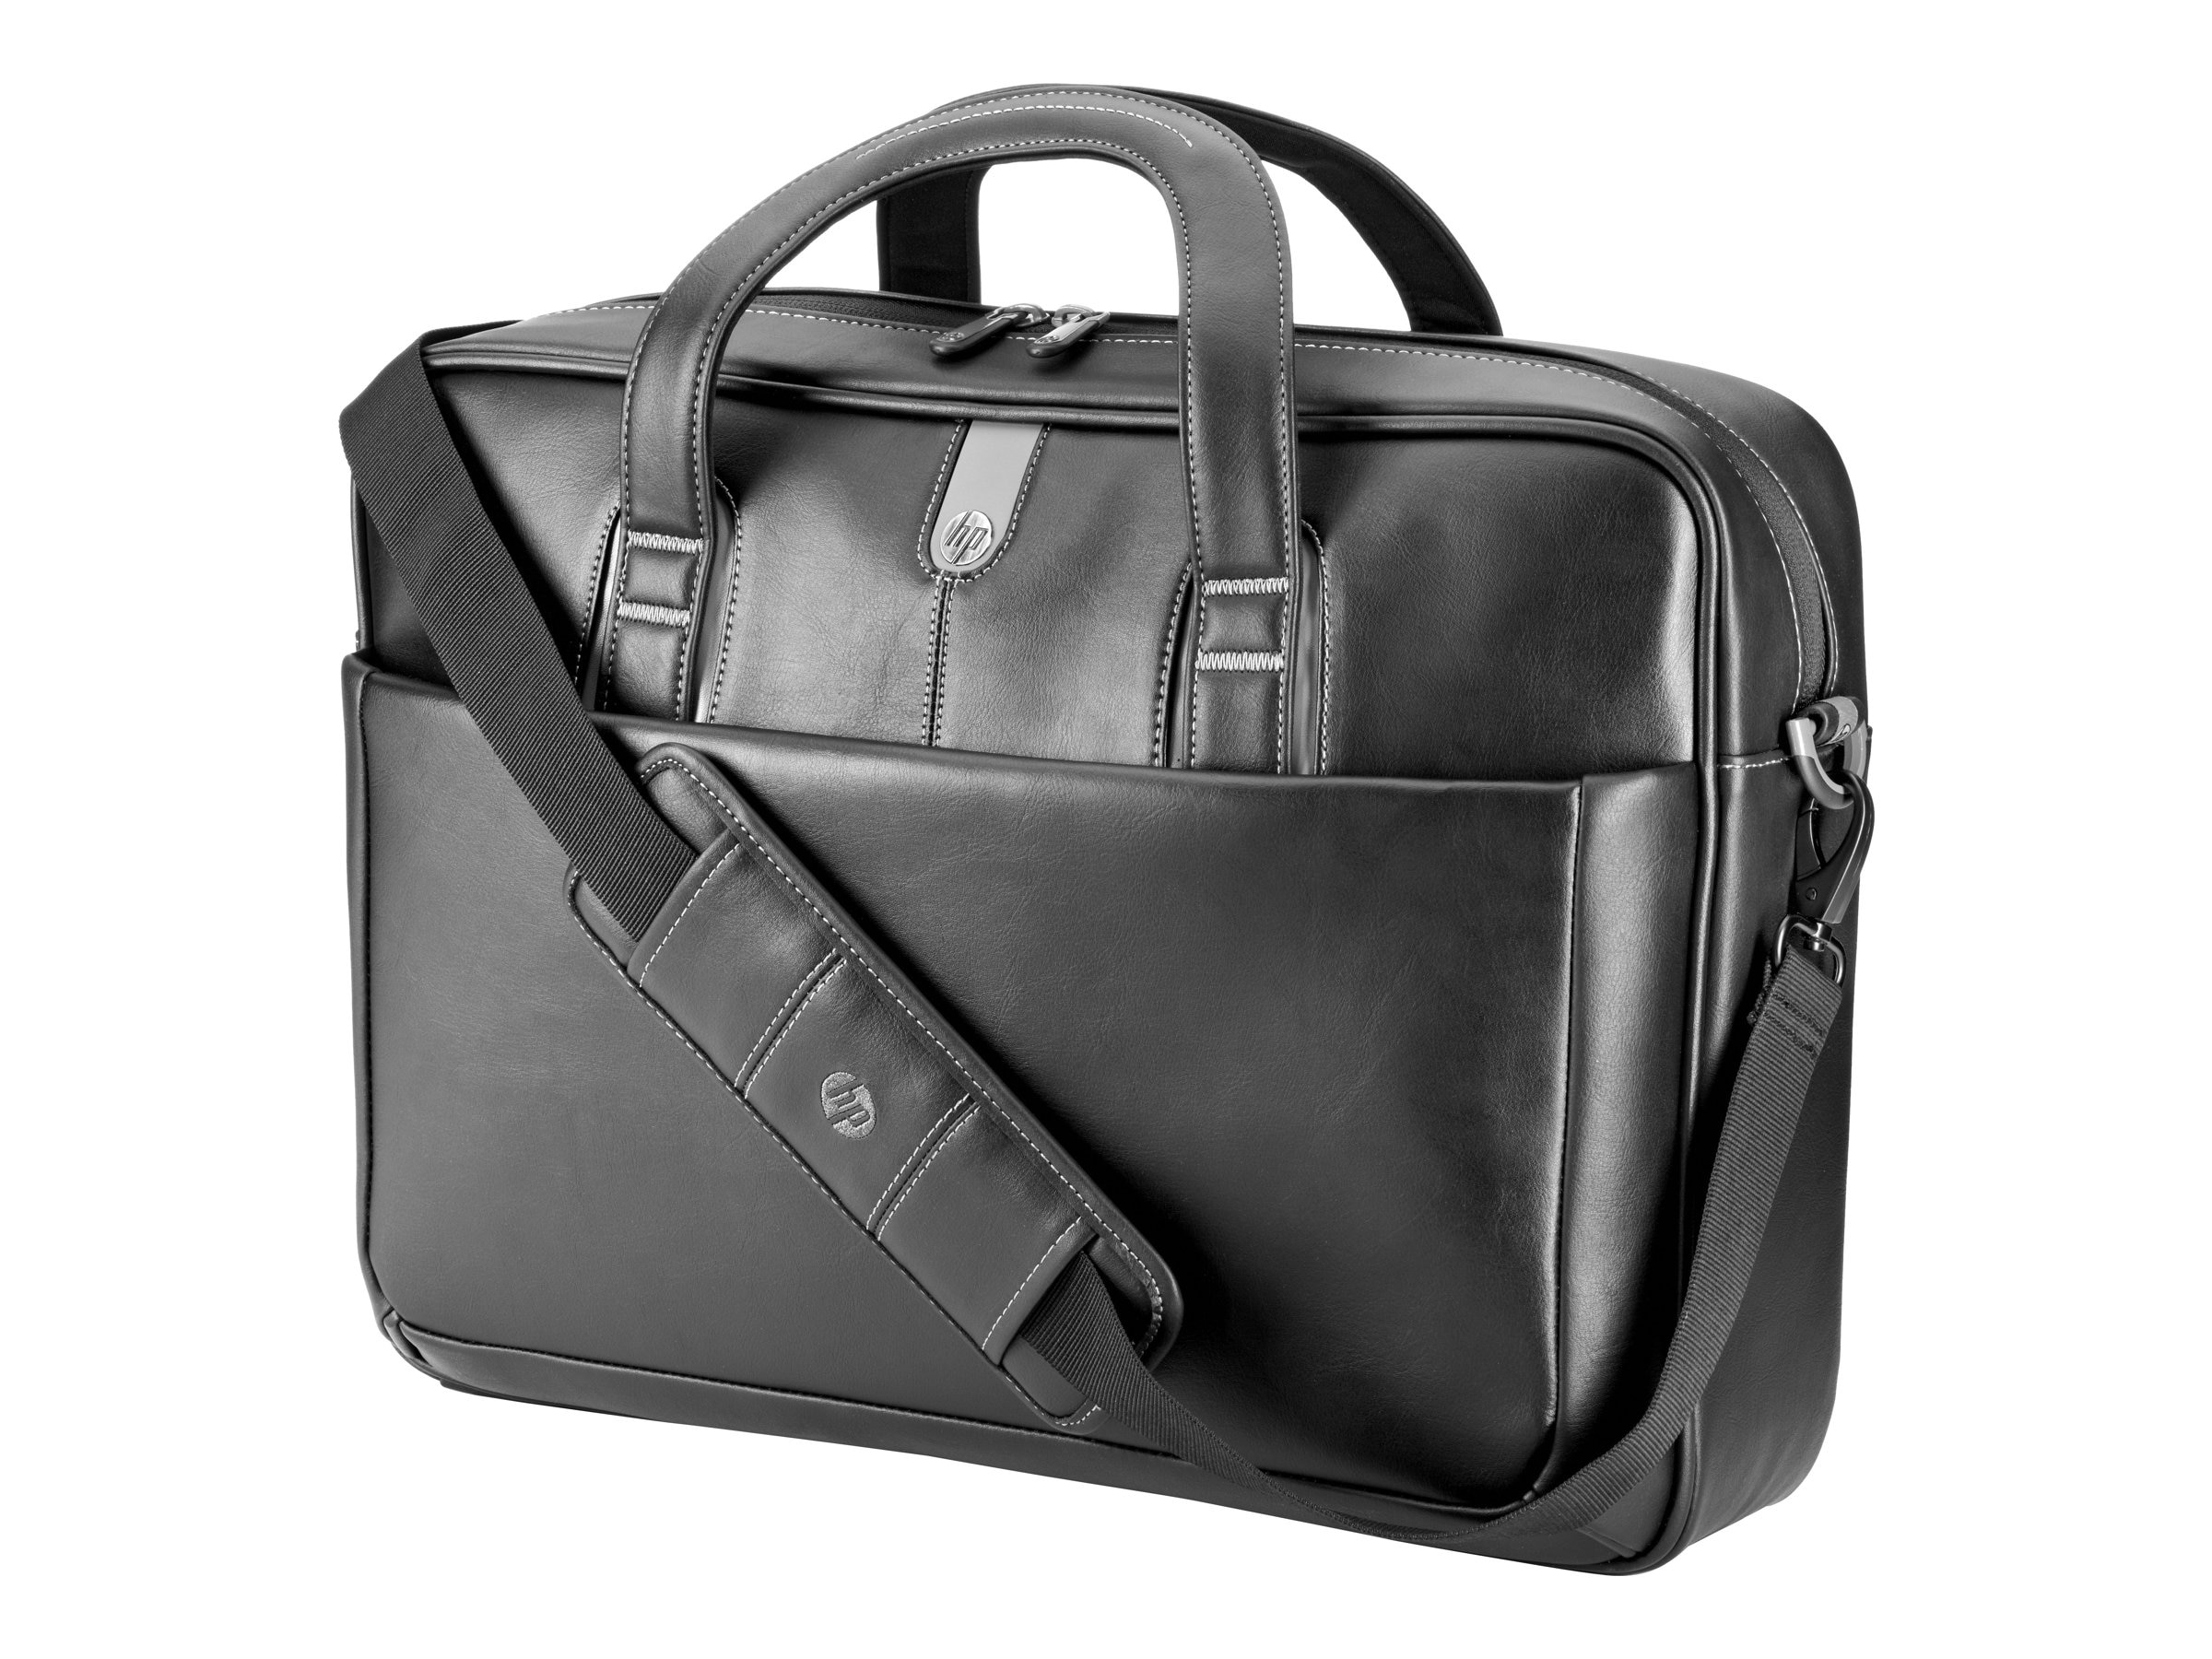 HP Professional Leather Case, H4J94AA, 14960491, Carrying Cases - Notebook